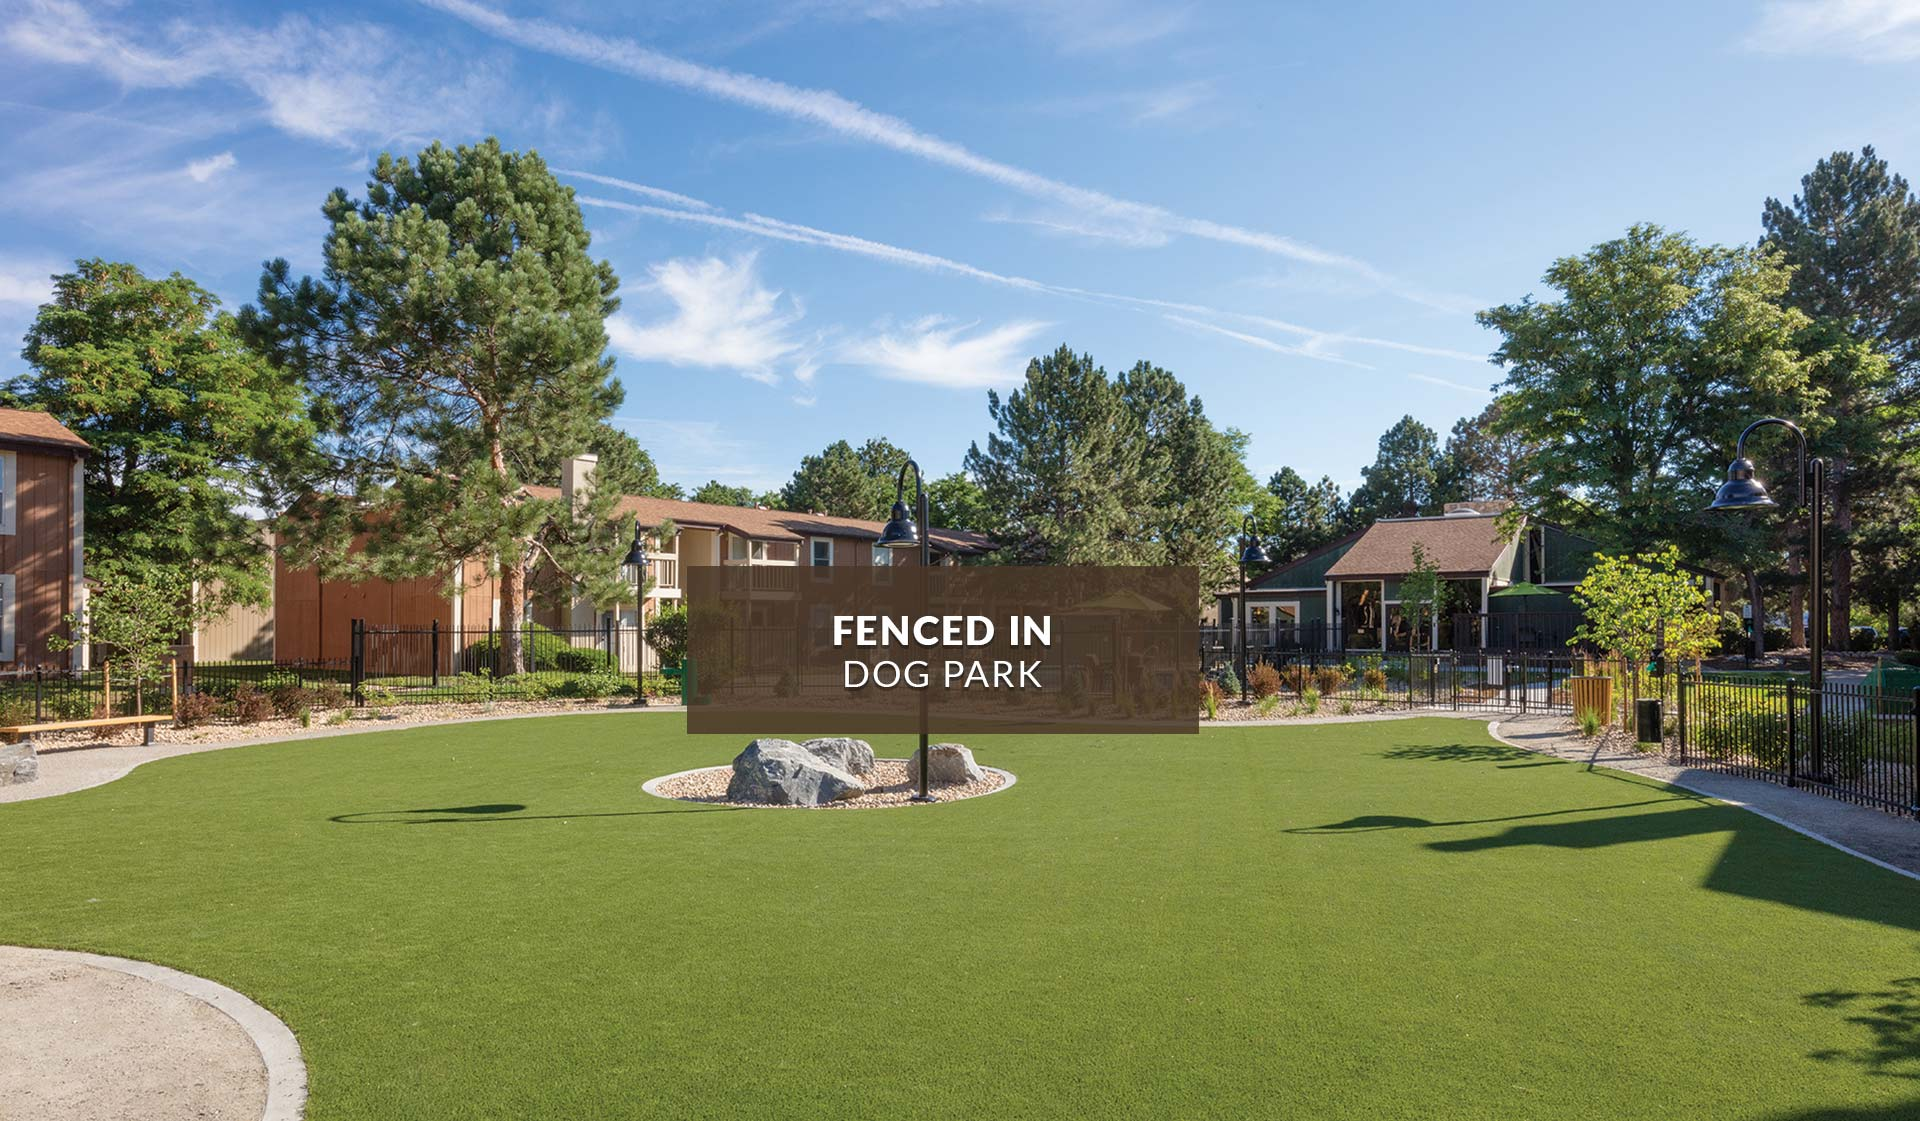 Creekside Apartments - dog park with apartment buildings in background - denver, CO